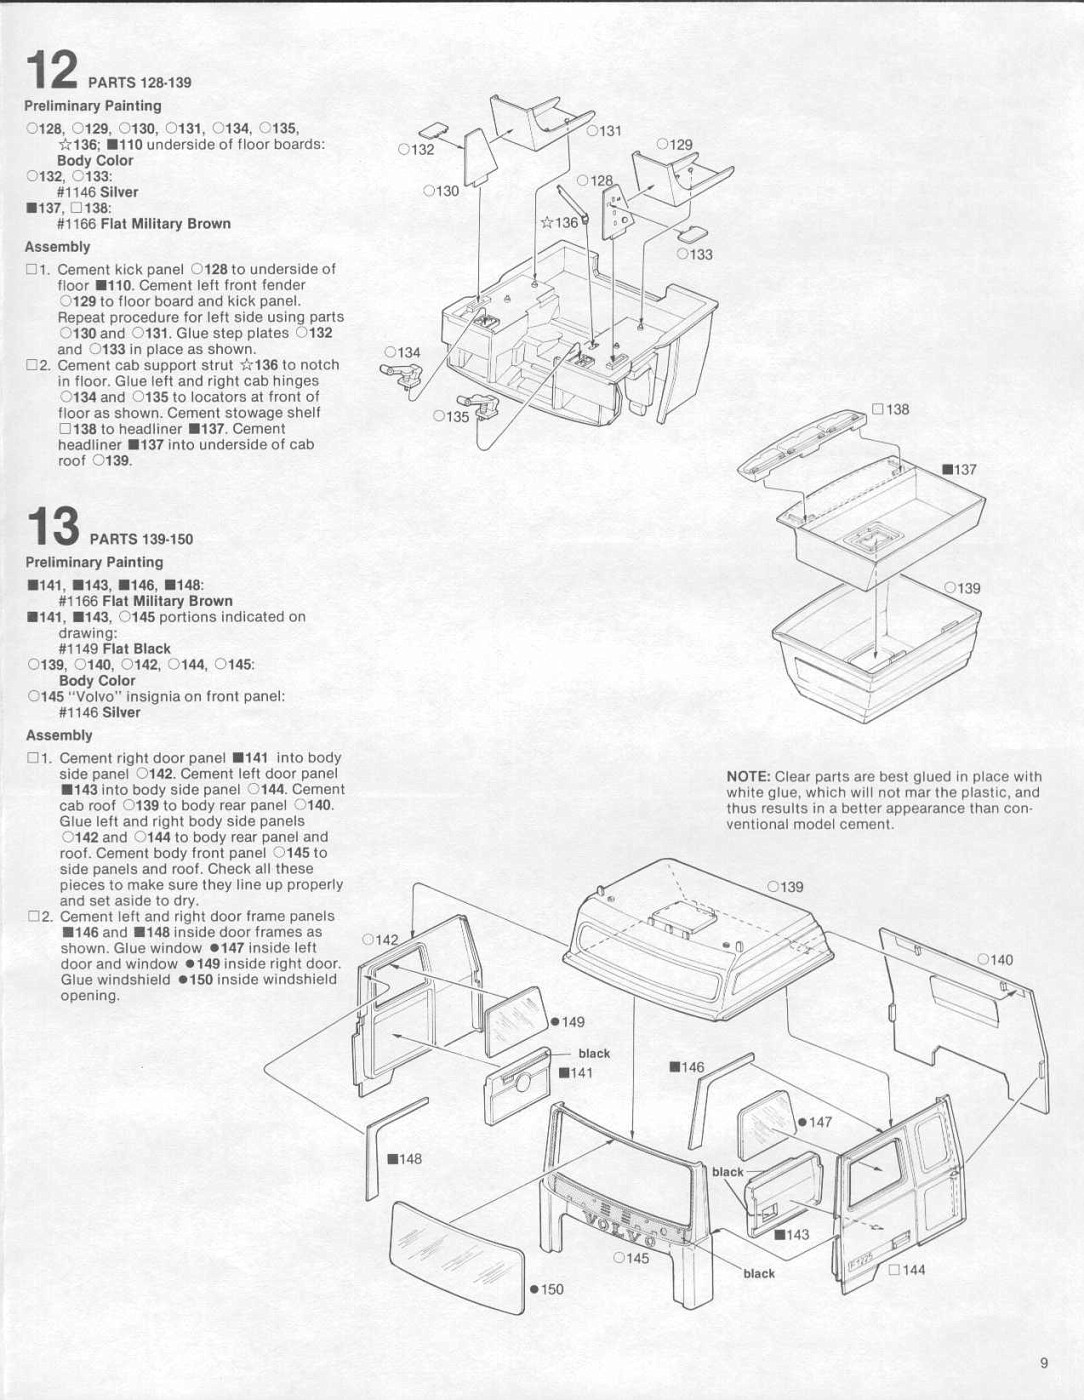 1969 Gto Dash Wiring Diagram, 1969, Free Engine Image For